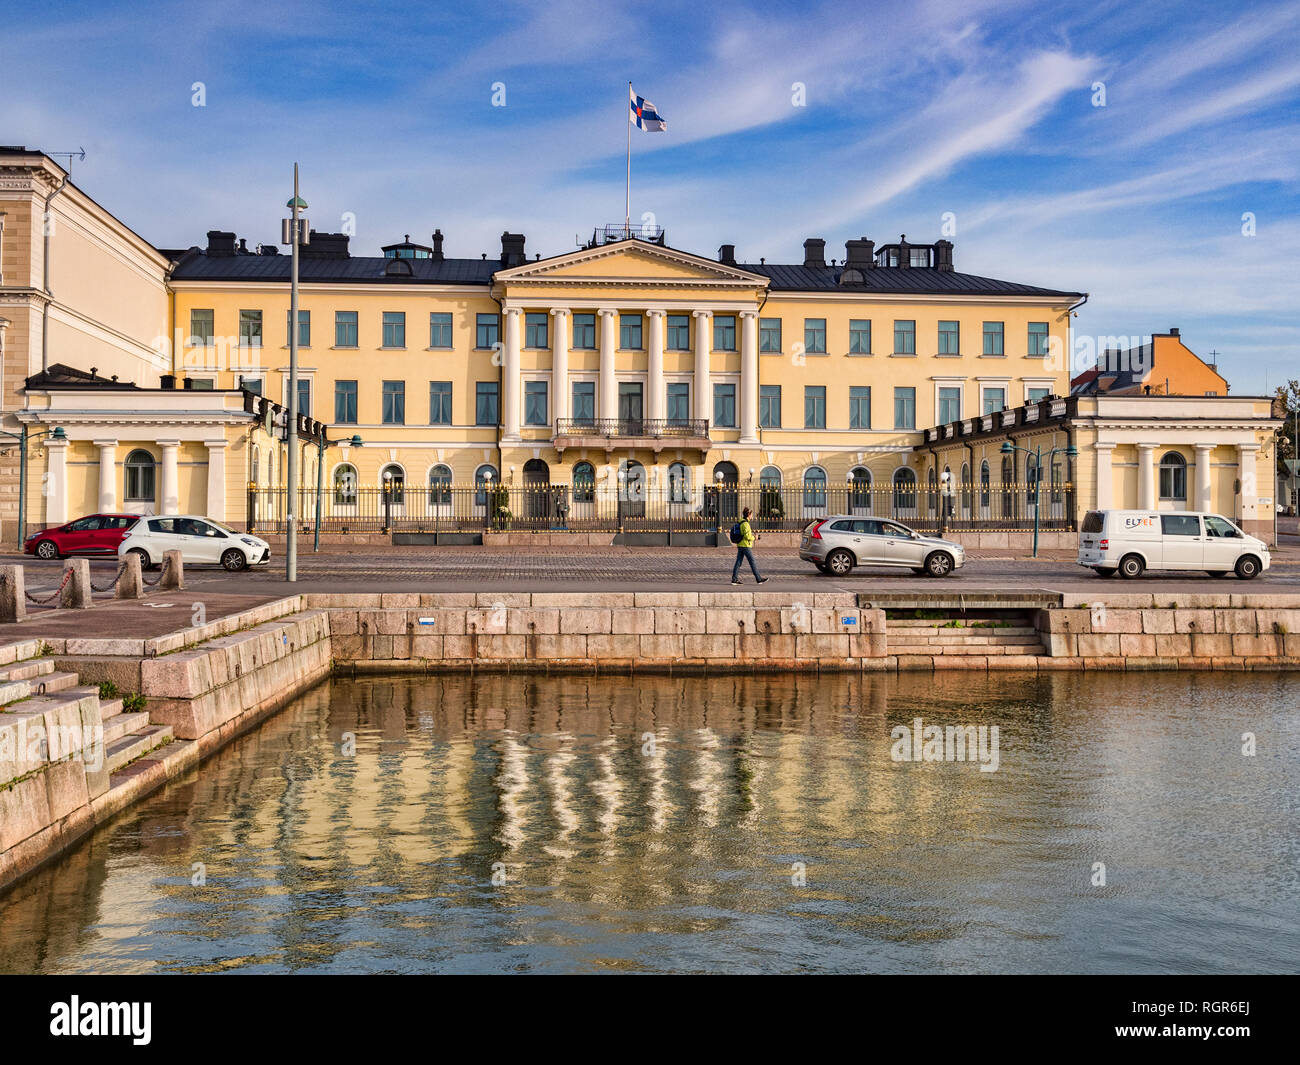 20 September 2018: Helsinki, Finland - President's Palace, or Presidentinlinna, on the Esplanadi, or waterfront, on a sunny autumn day. - Stock Image